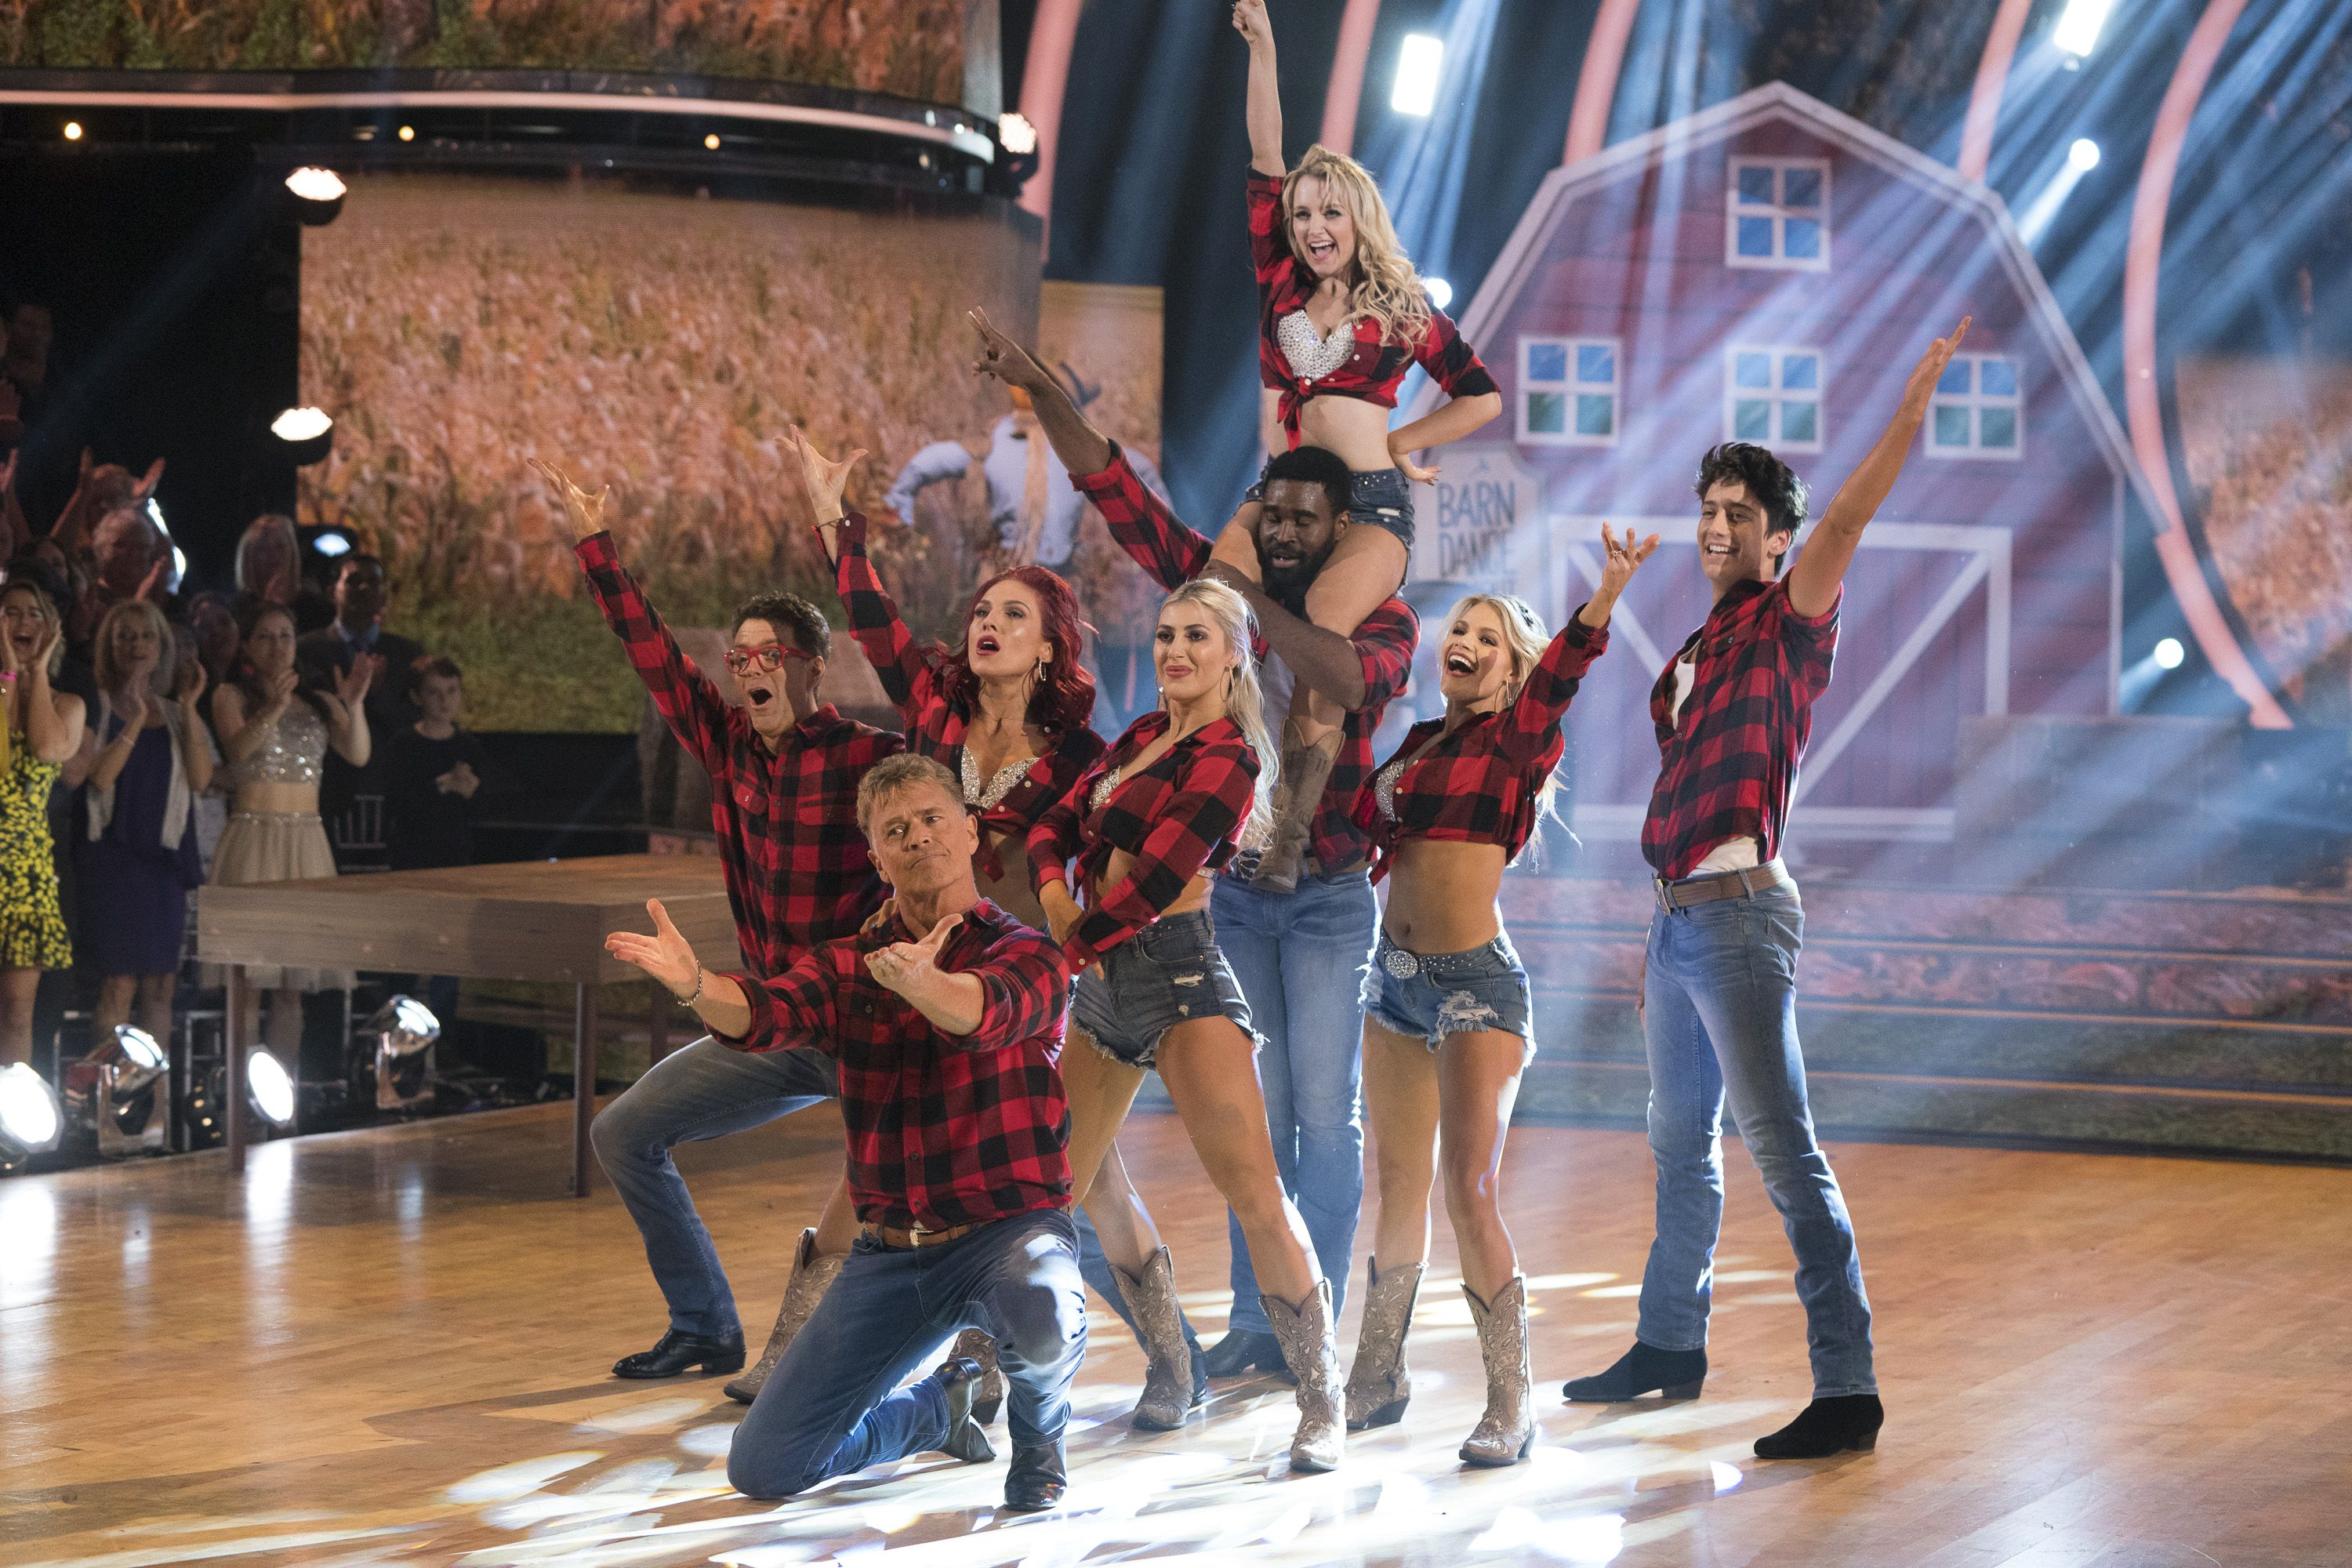 What couple is dating on dancing with the stars 2020